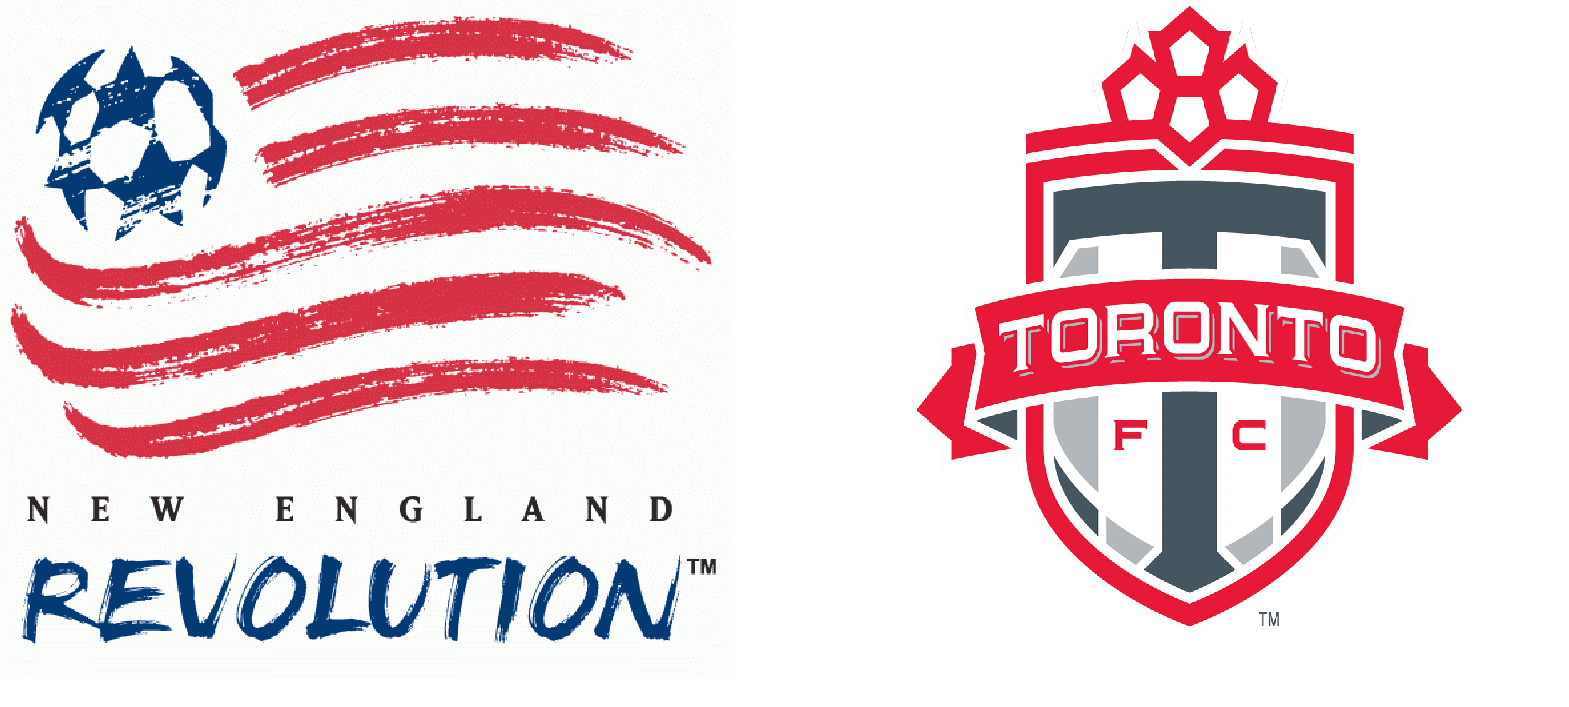 Join BOMA Boston for an evening at Gillette Stadium with the New England  Revolution! Bring your friends and family to watch the New England  Revolution take PlusPng.com  - New England Revolution PNG